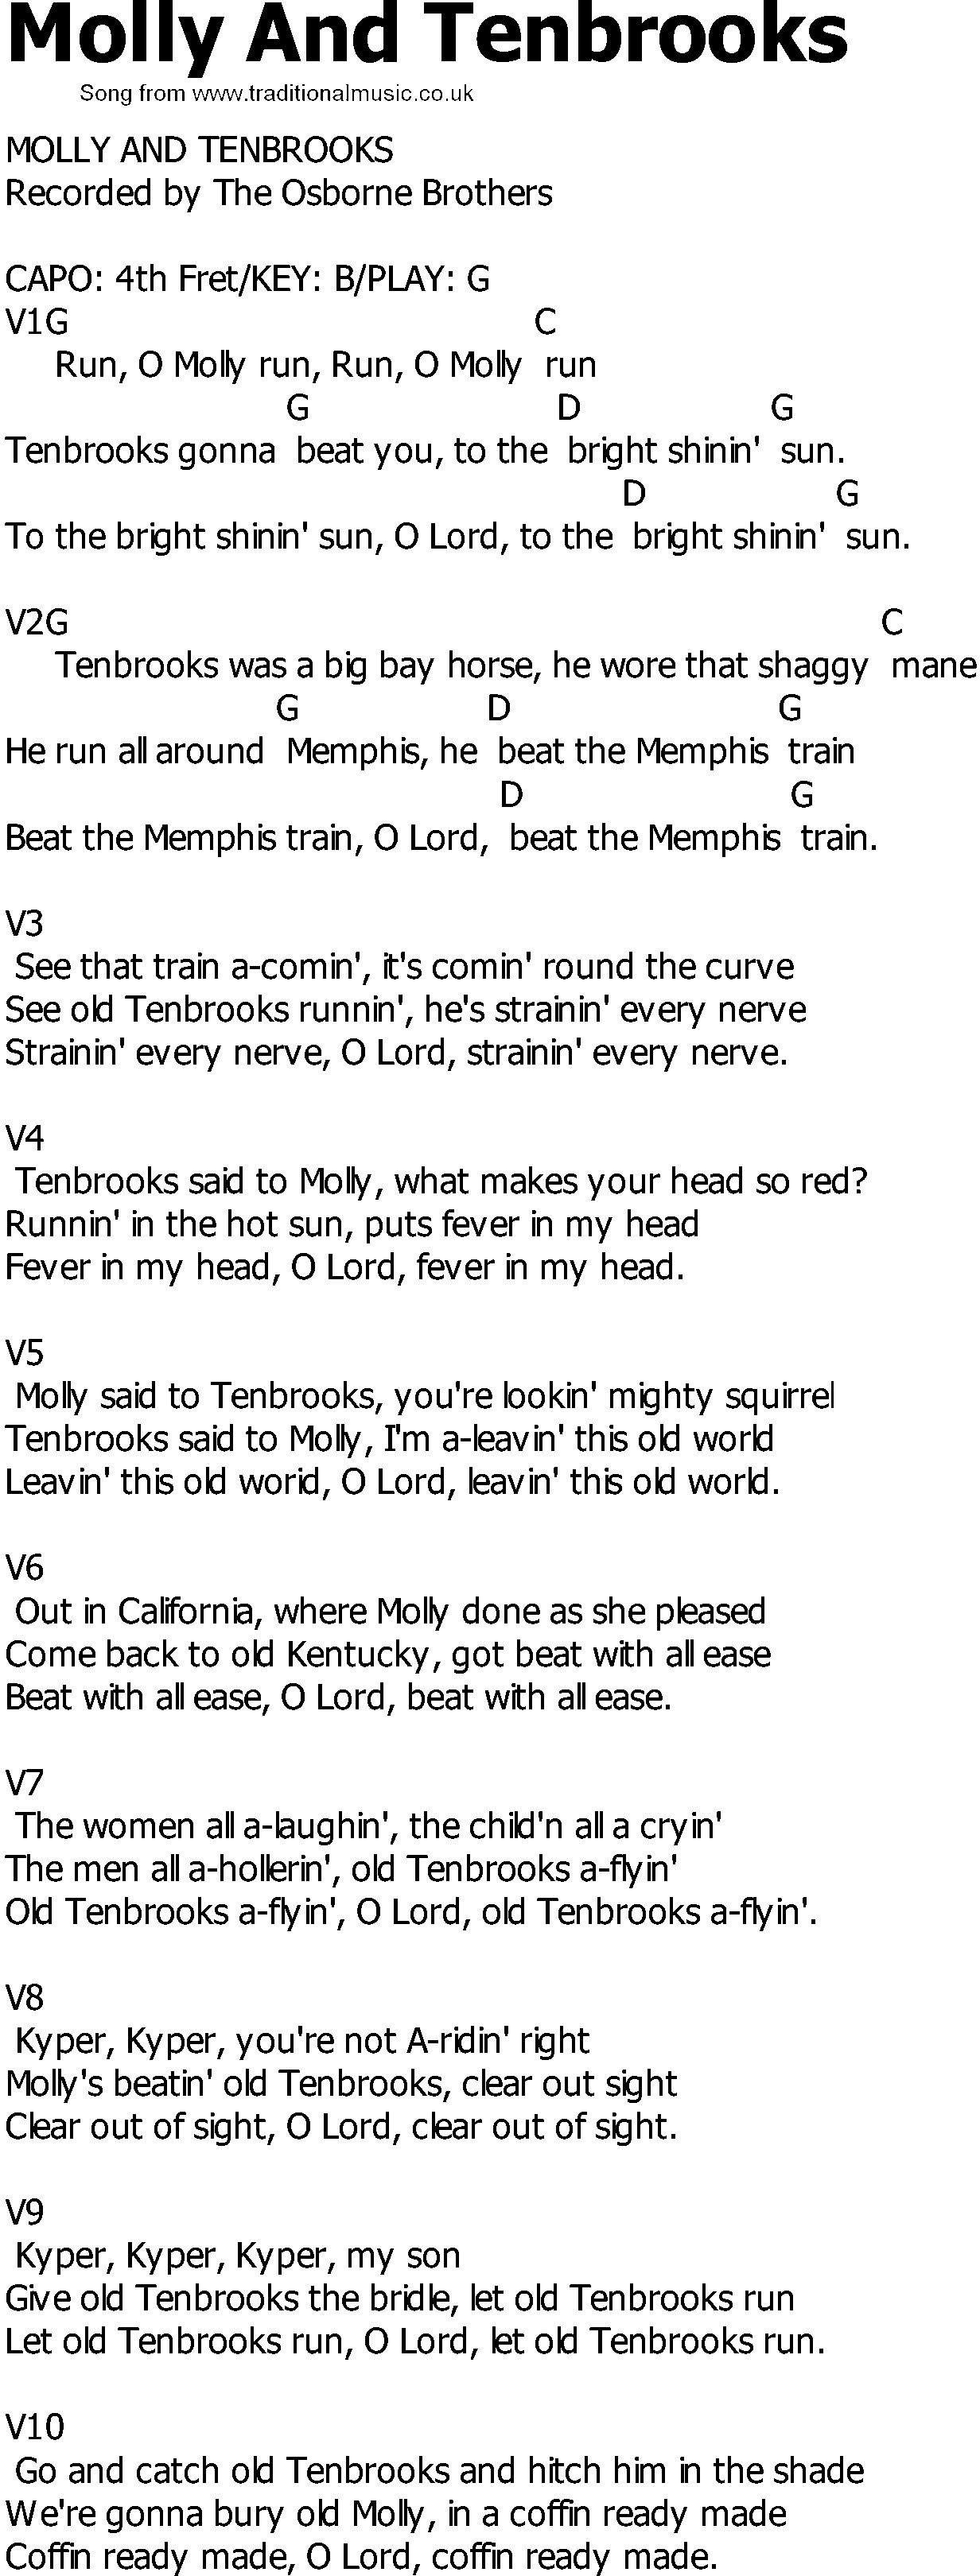 Bill Monroe - Molly And Tenbrooks Lyrics | MetroLyrics